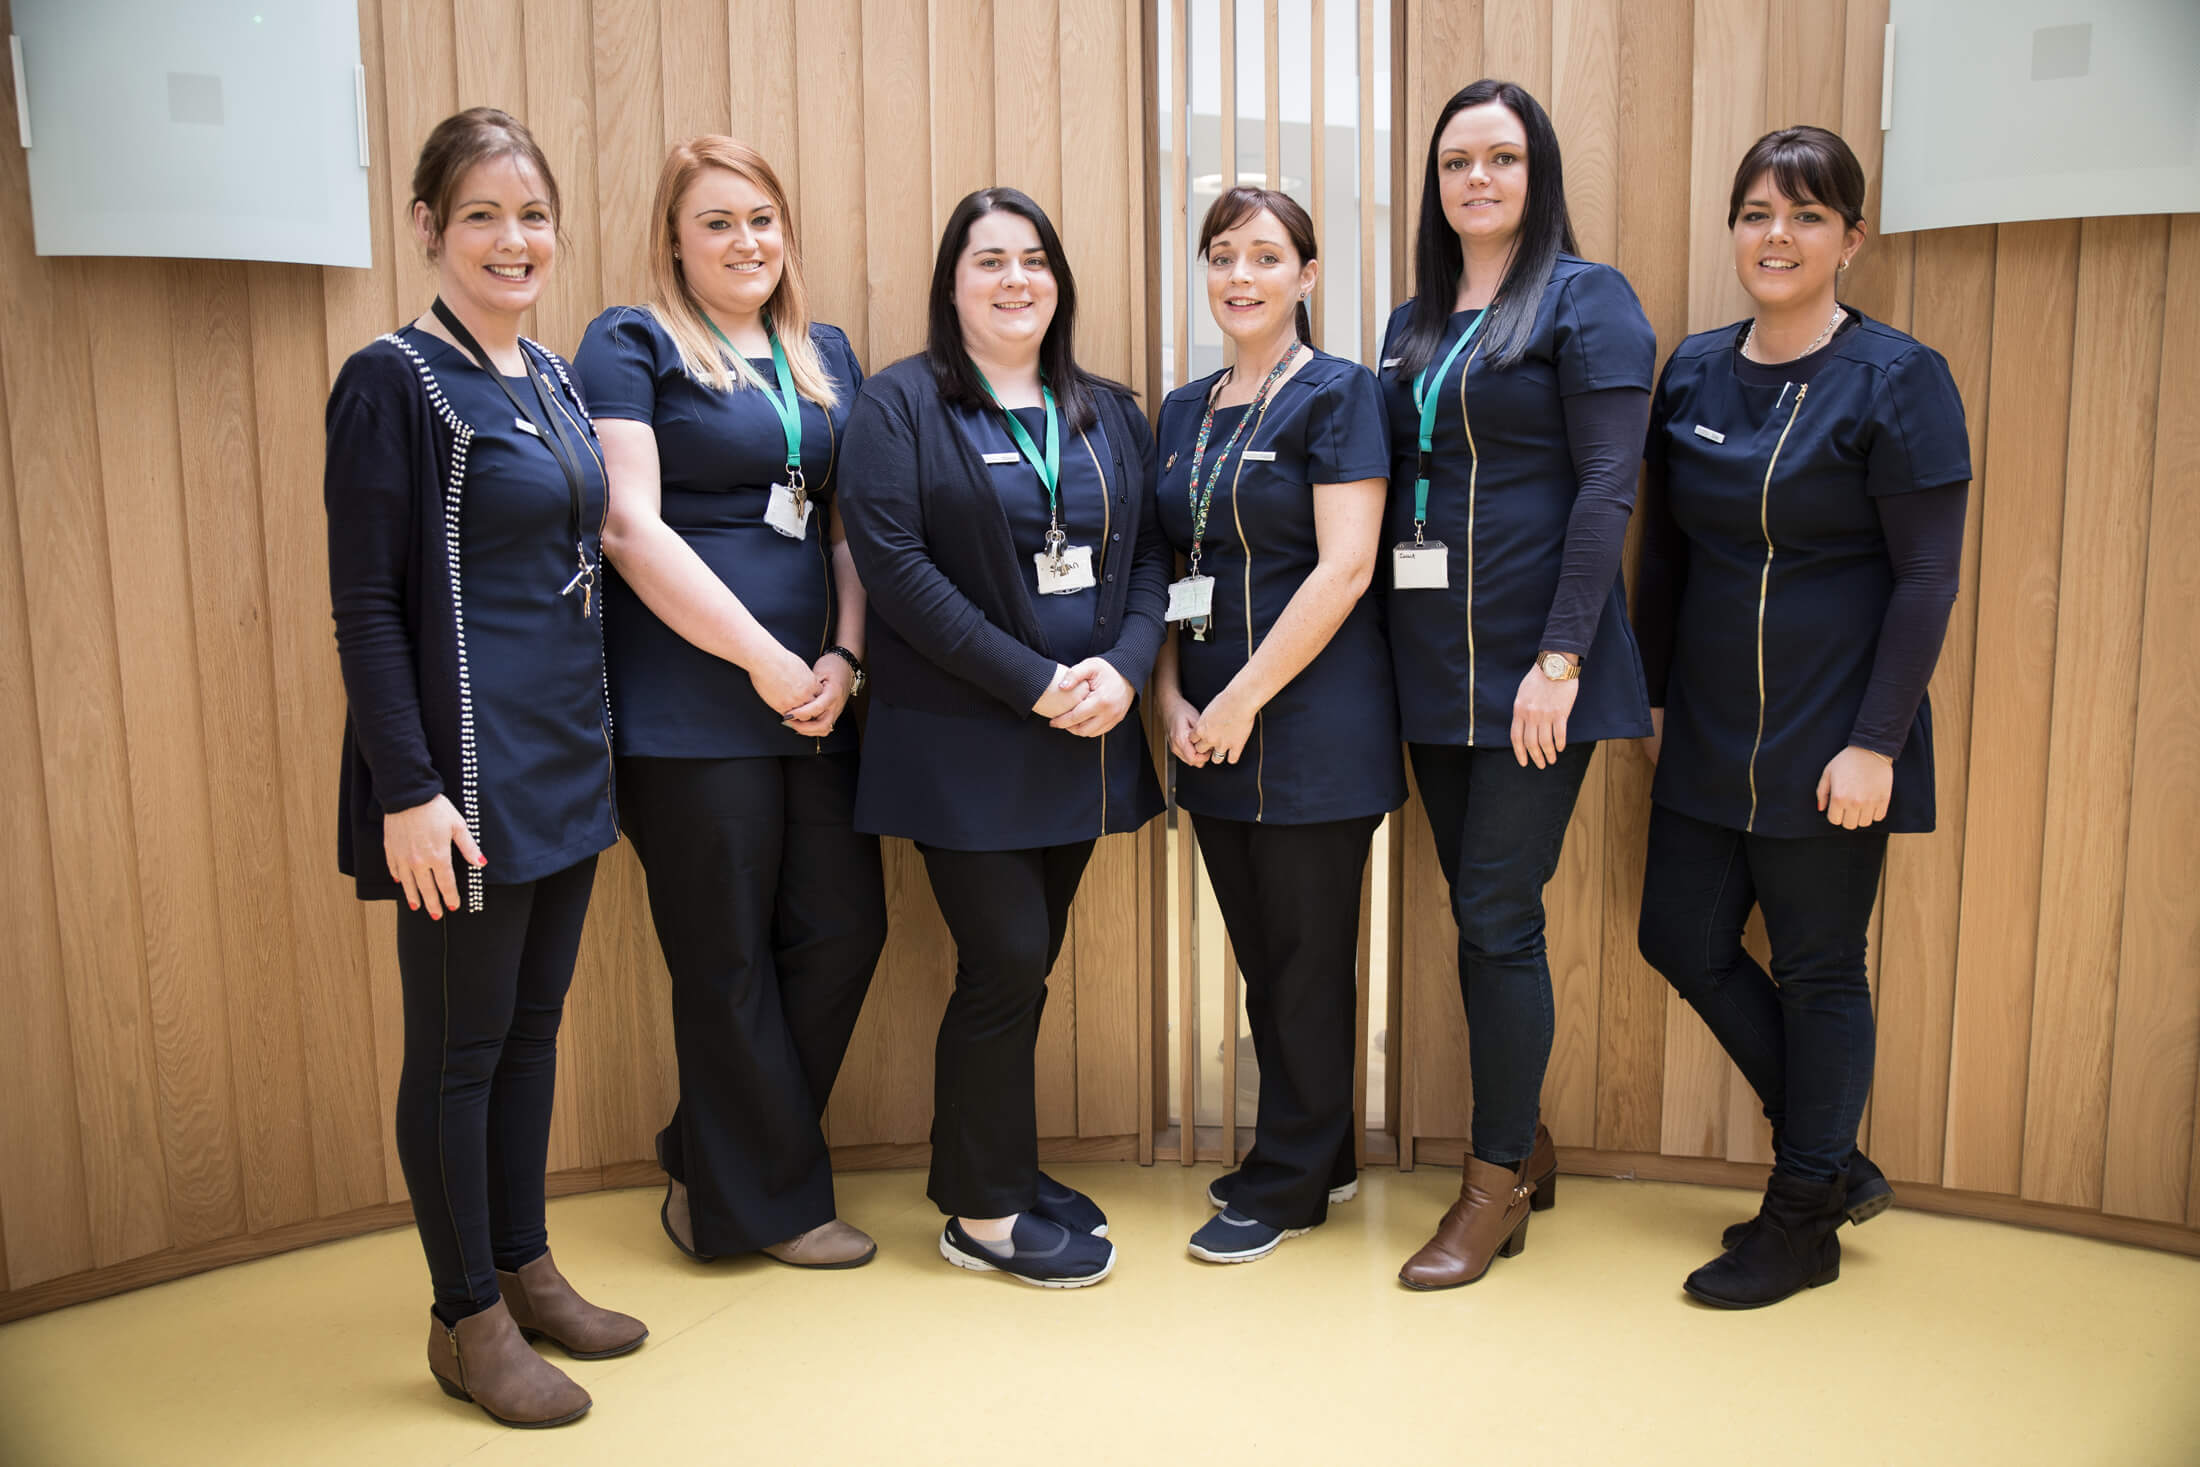 Scally, McDaid, Roarty Medical Practice Staff